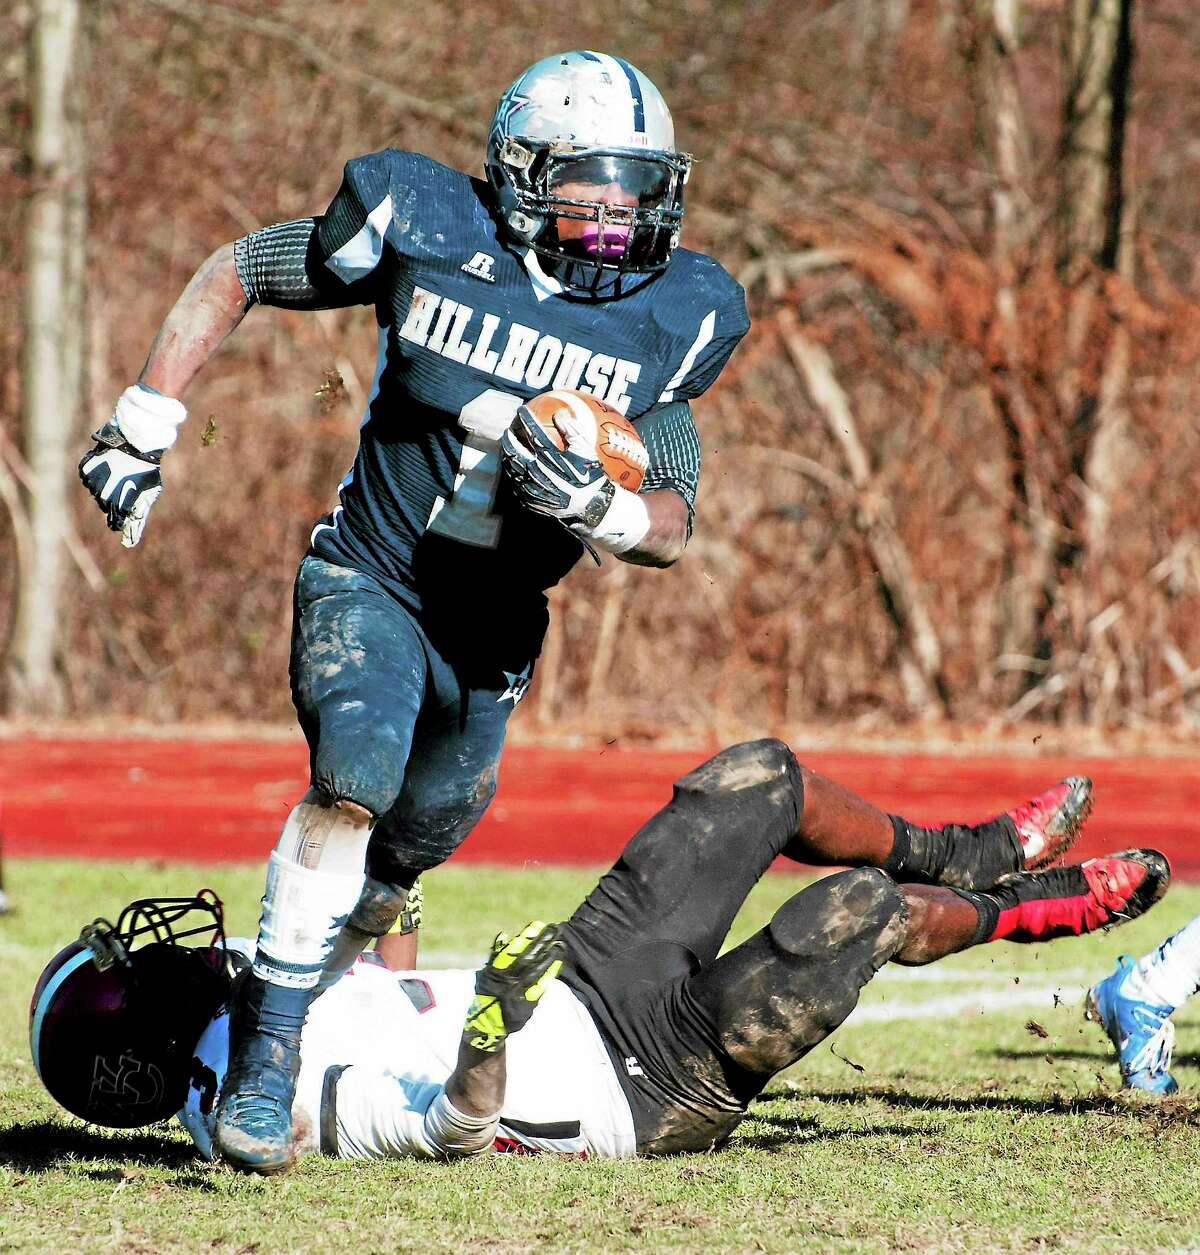 Hillhouse's Harold Cooper returns an interception during this past Thanksgiving's Elm City Bowl at Wilbur Cross. Cooper will take part in today's Super 100 Football Classic at Rentschler Field in East Hartford.